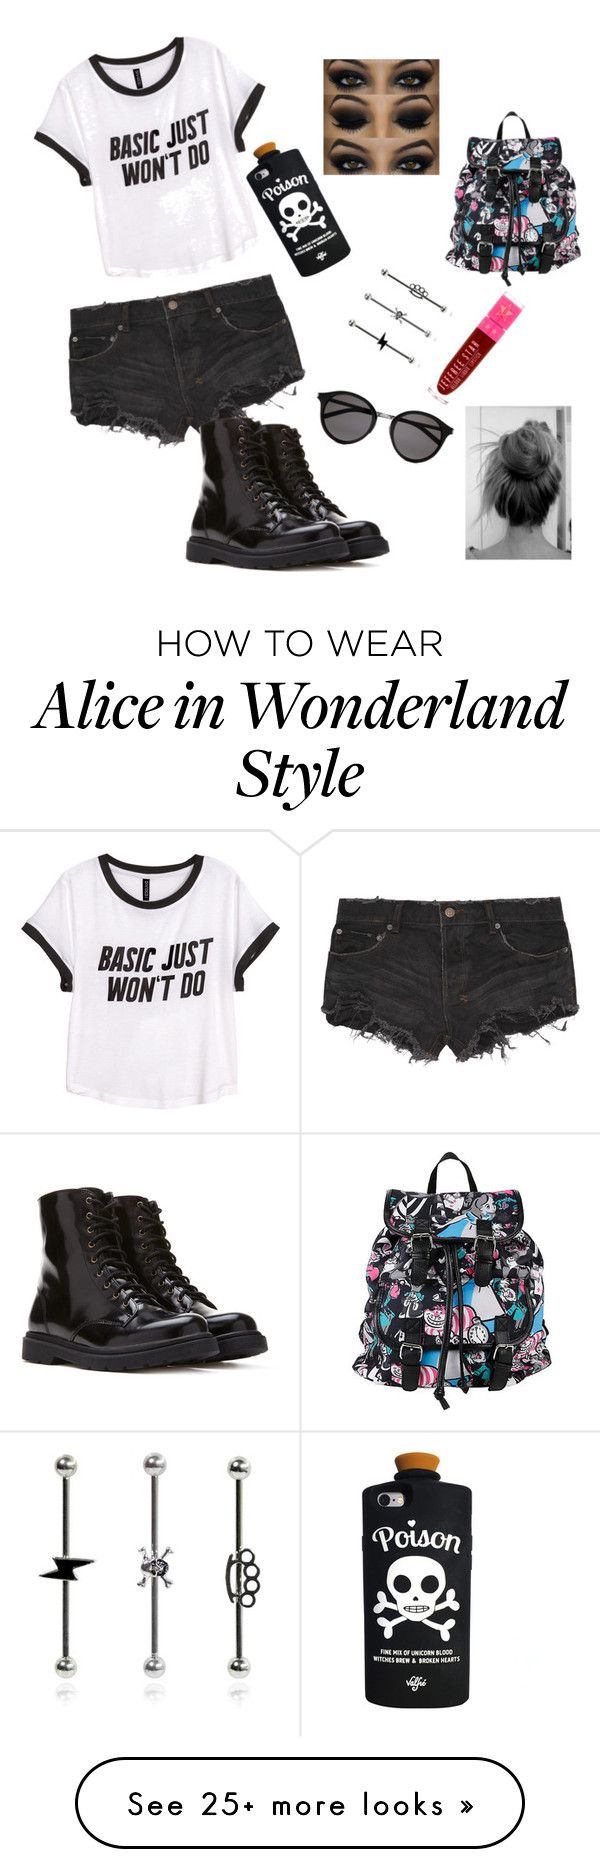 """Untitled #50"" by seriousblackk on Polyvore featuring Ksubi, Forever 21, H&M, Yves Saint Laurent, Valfré and Disney"